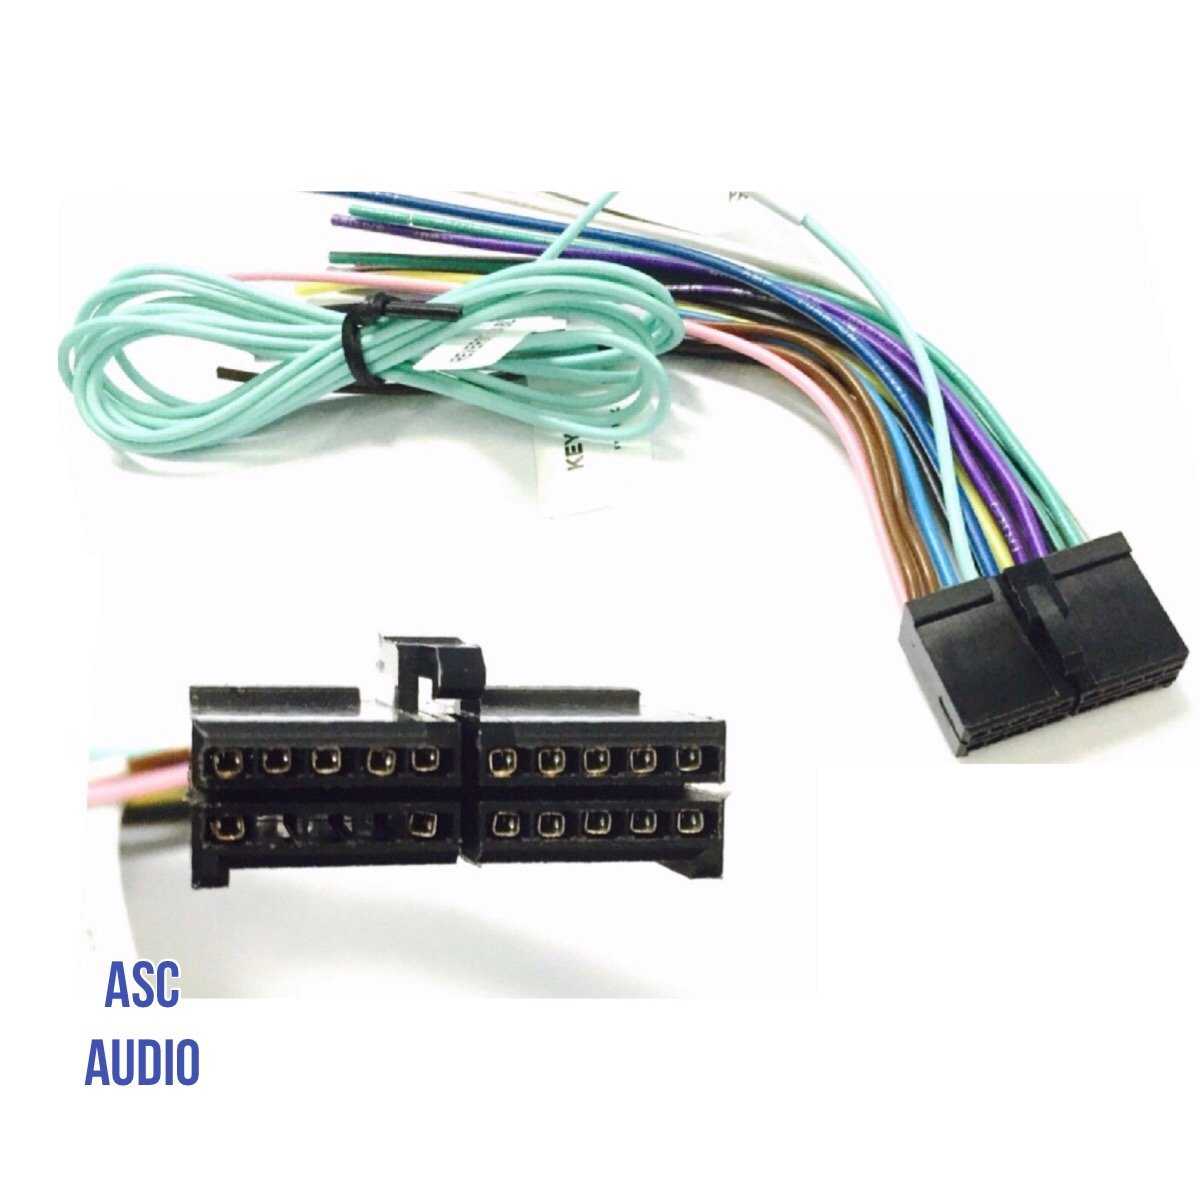 61MO4b59GtL._SL1200_ amazon com xtenzi wire harness for boss radio dvd navigatio boss bv9976 wire harness at webbmarketing.co